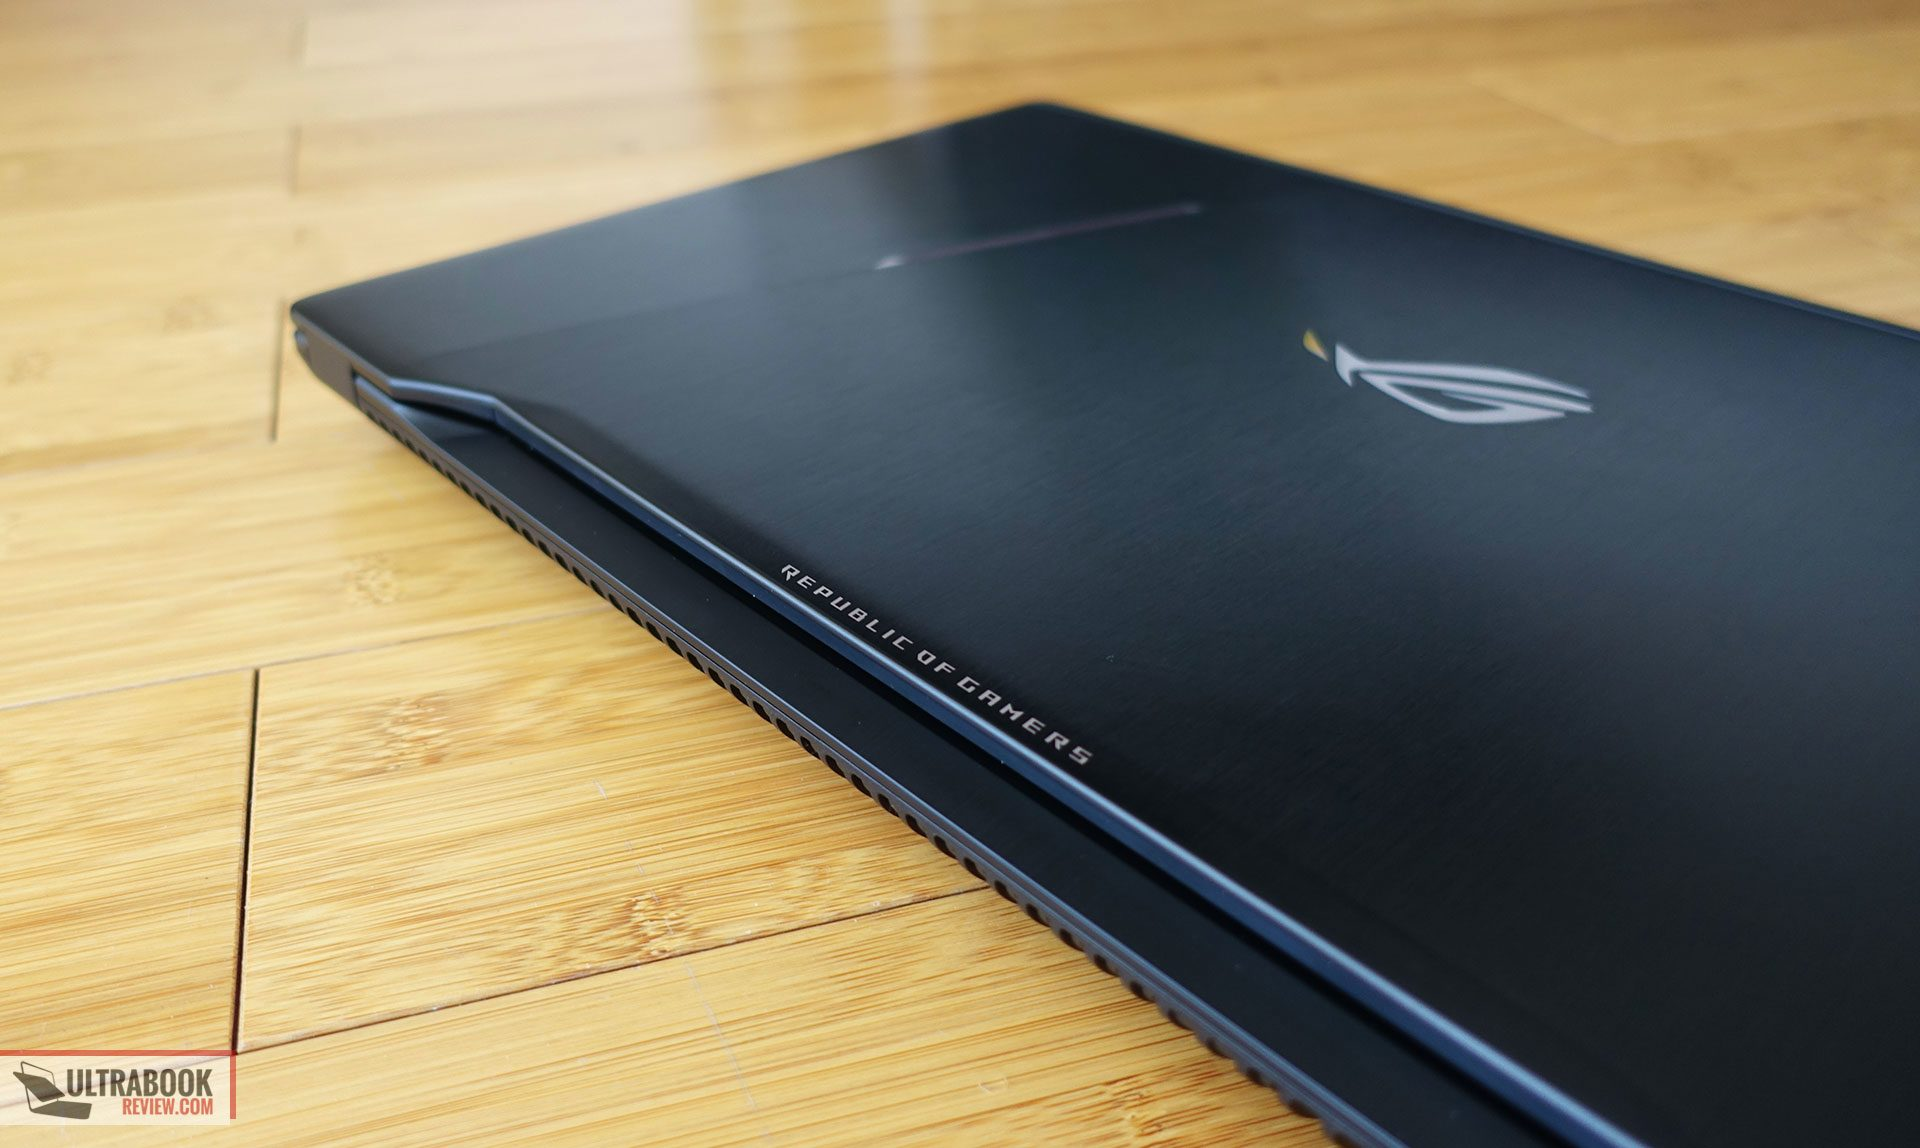 Asus ROG Strix GL702ZC review and impressions - the AMD Ryzen 7 1700